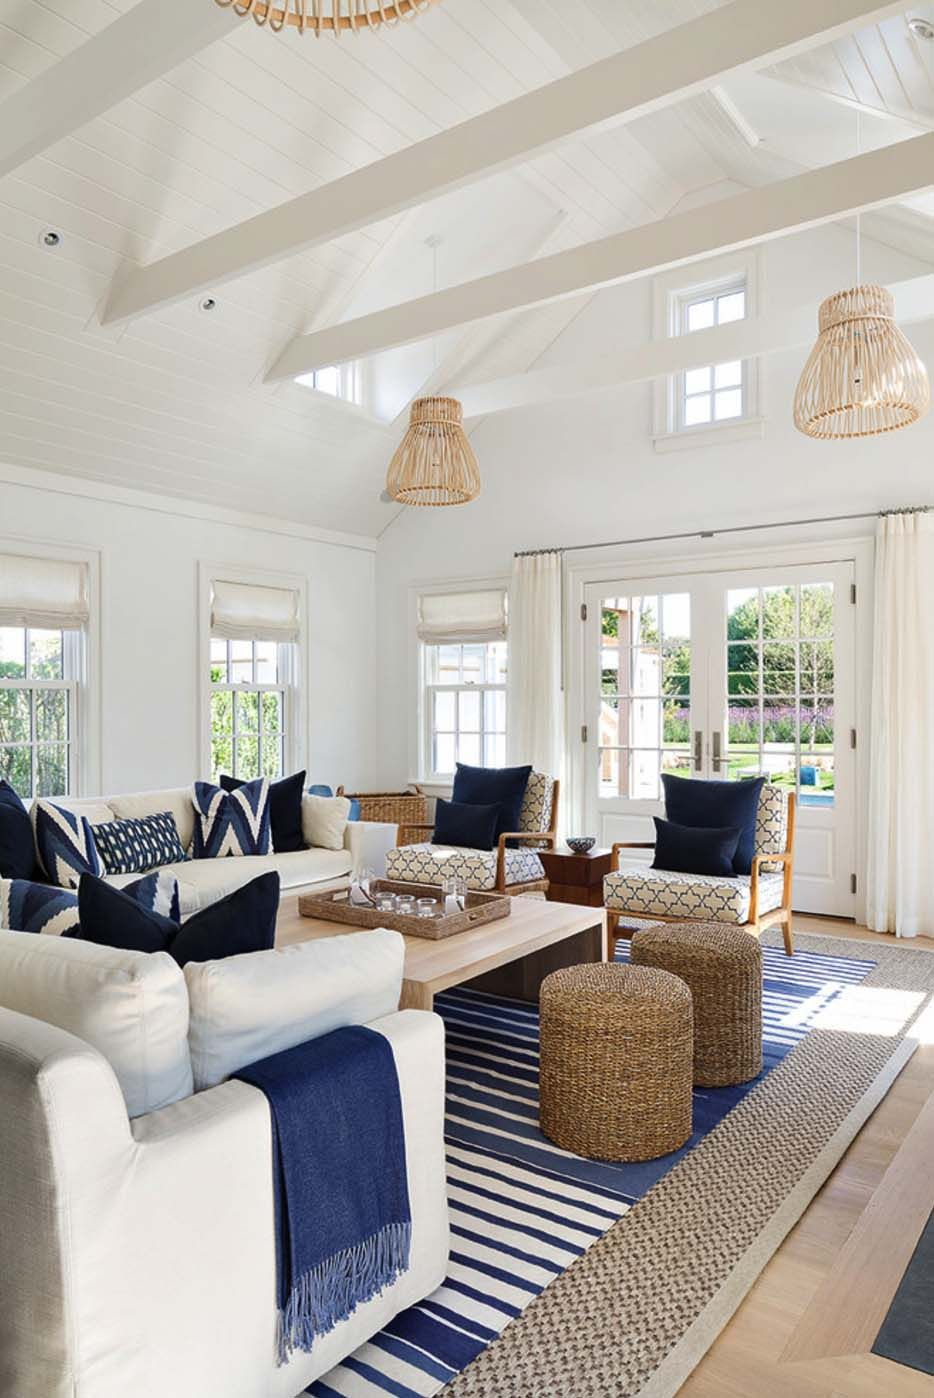 Island Inspired Living Room Furniture Discount Chairs Shingle Style House With Beach Chic Interiors On Nantucket Cocoon Inspiration Bycocoon Com Villa Design Wellness Bathroom Products For Easy Dutch Designer Brand